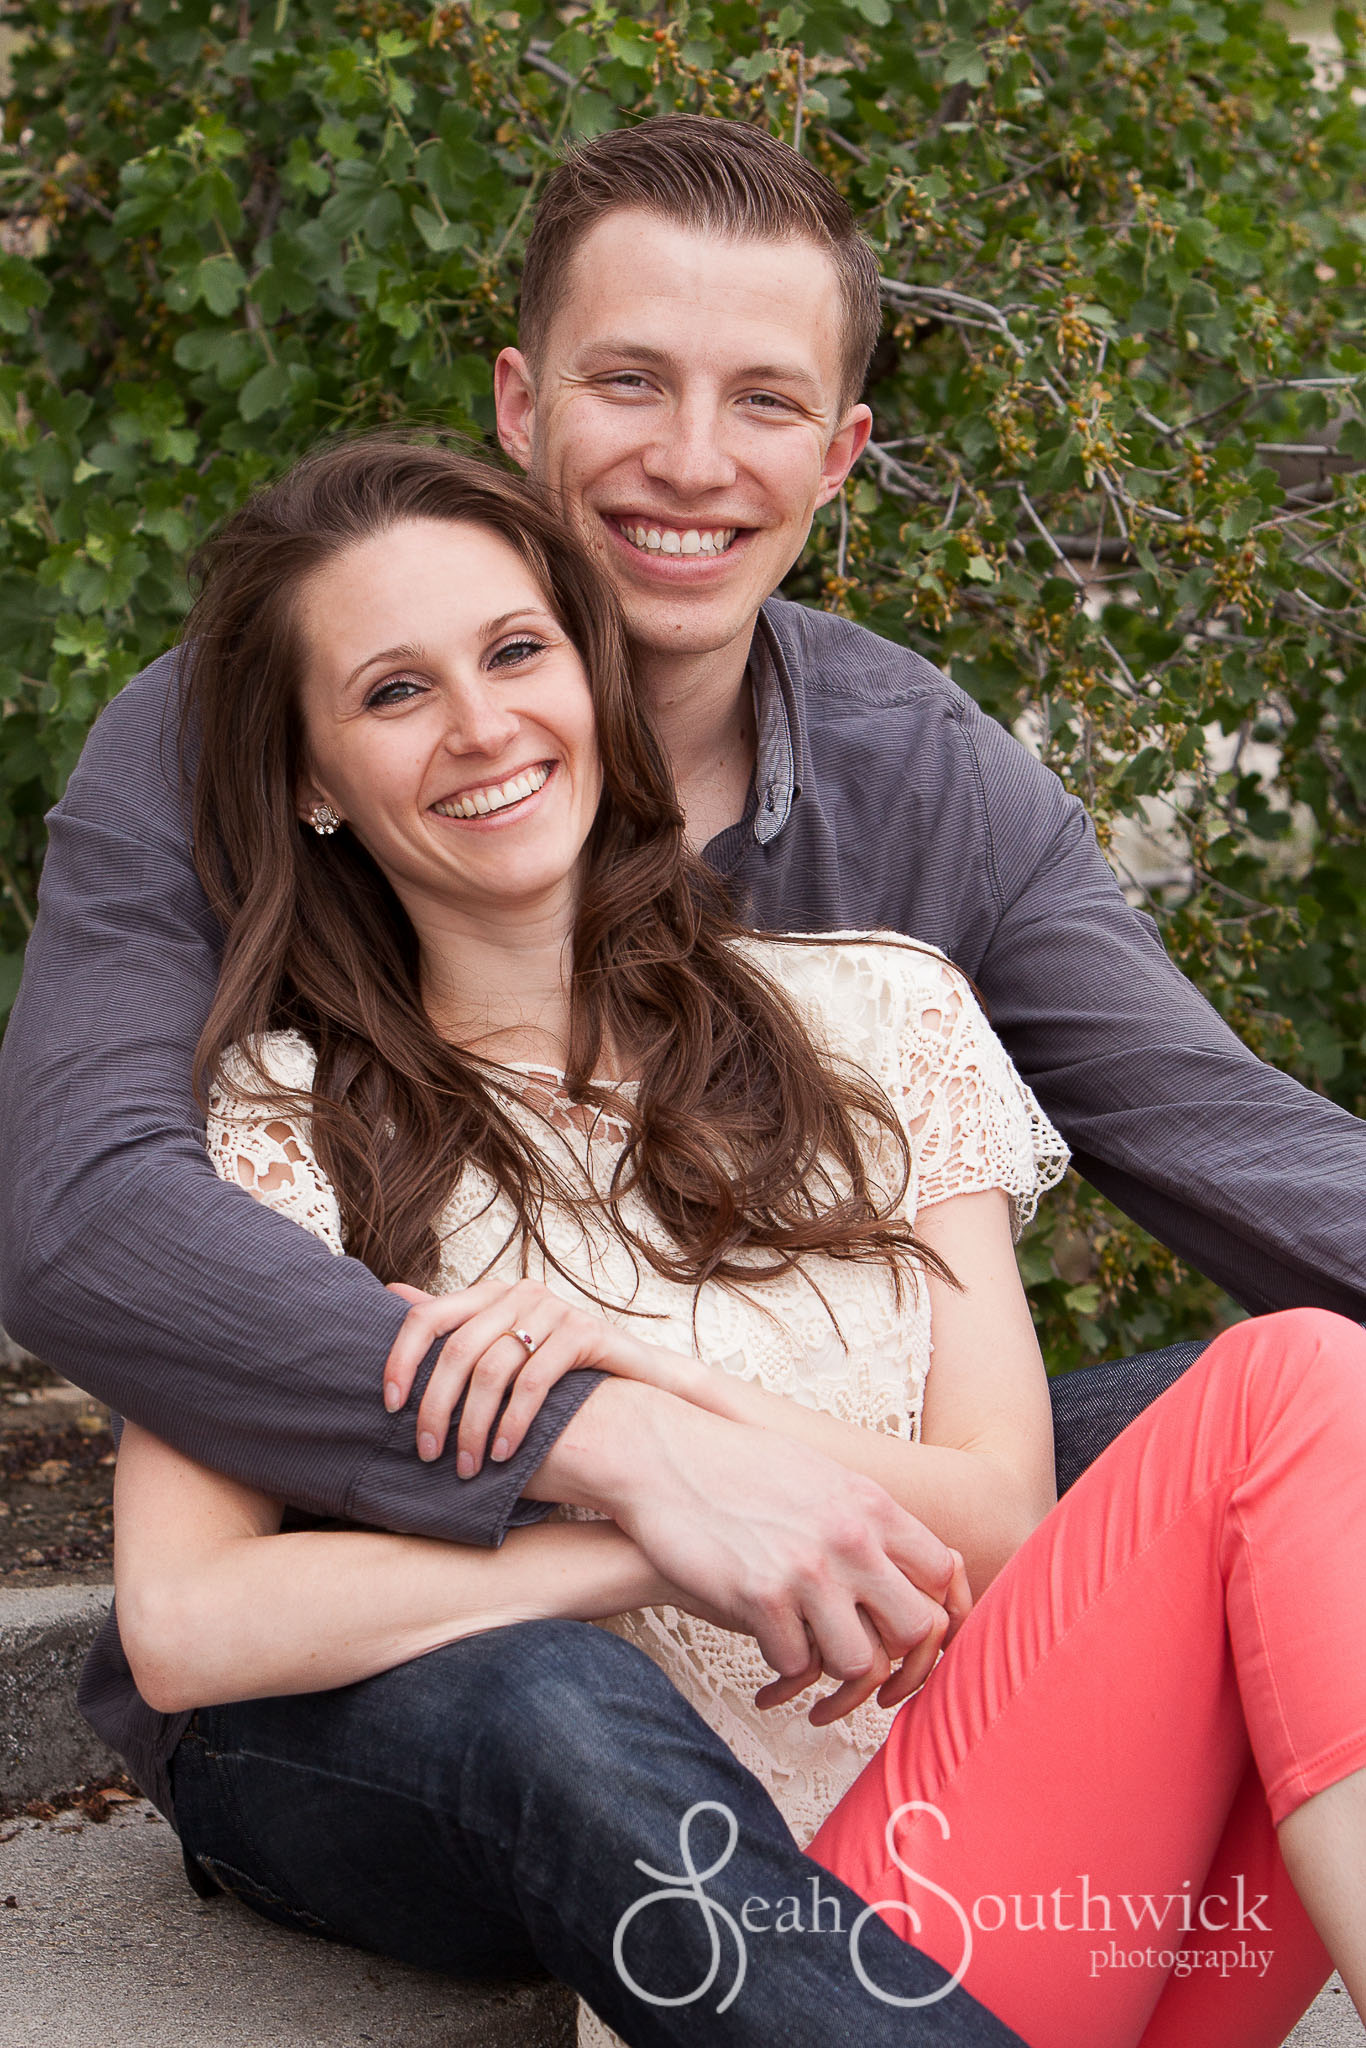 Engagement Photography Leah Southwick Photography-17.jpg